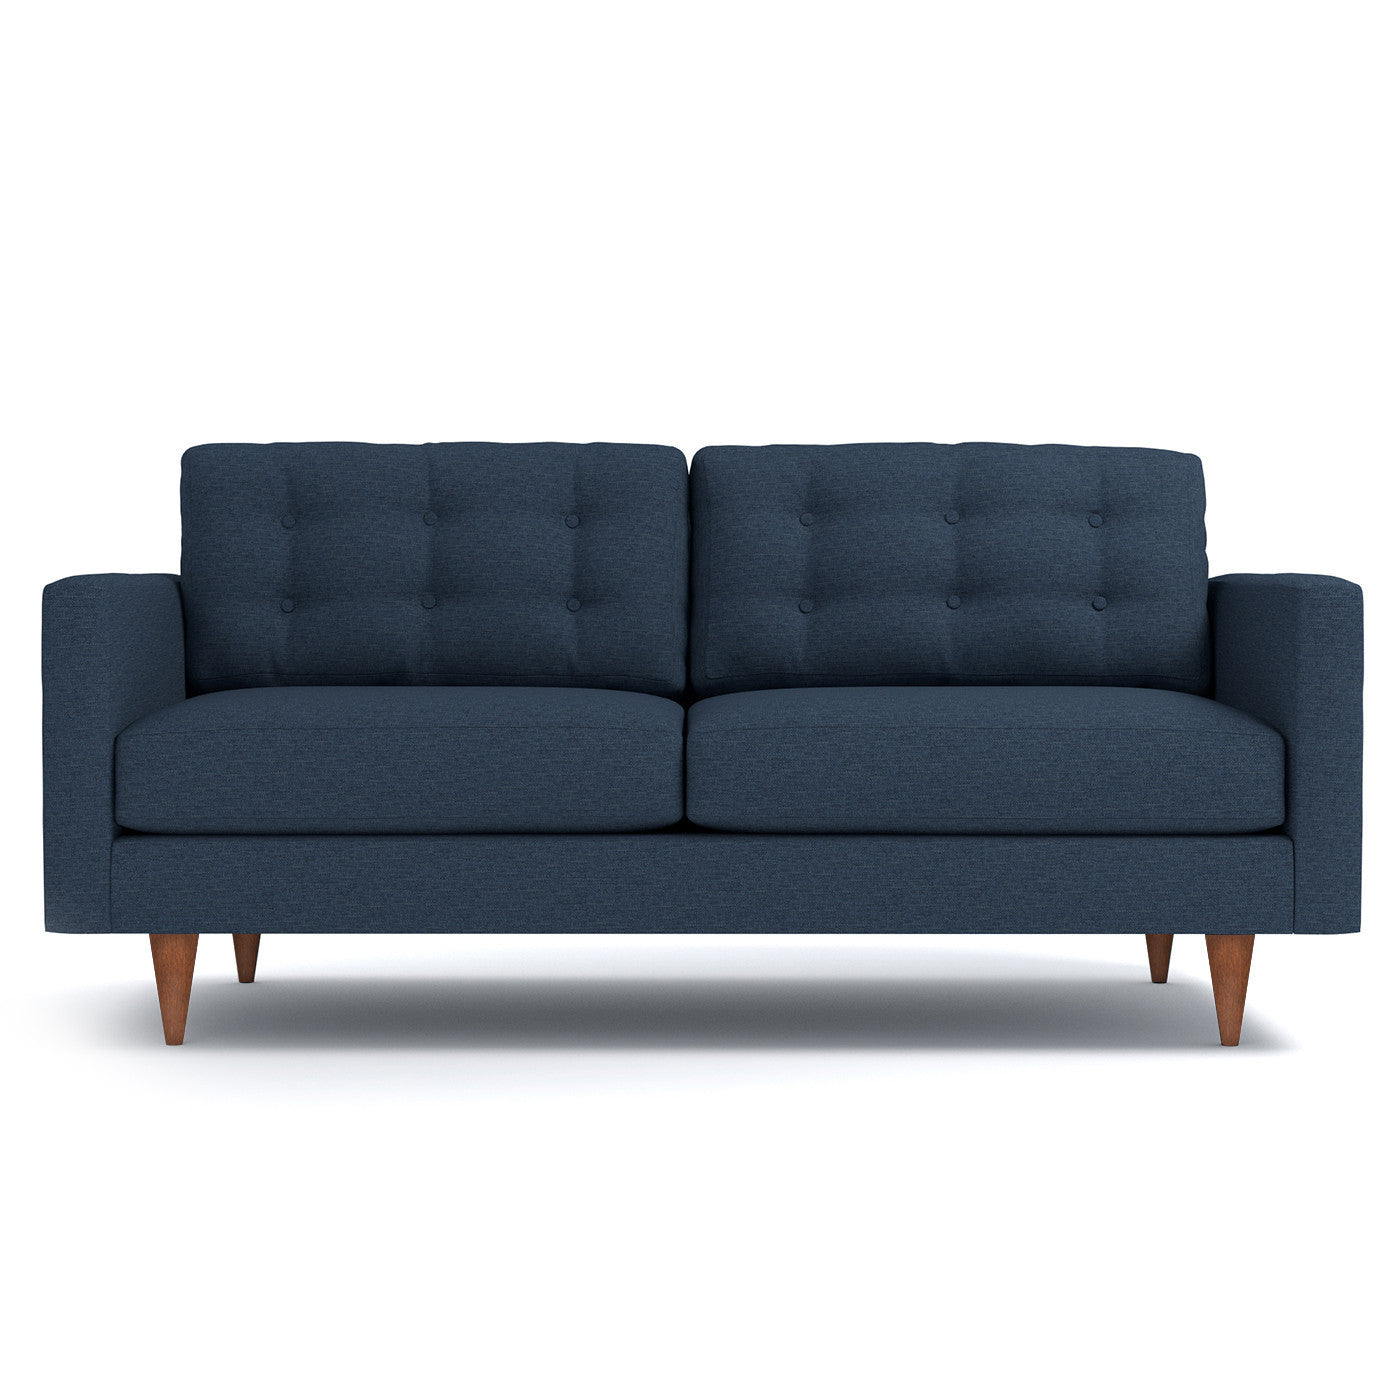 Logan Apartment Size Sofa CHOICE OF FABRICS